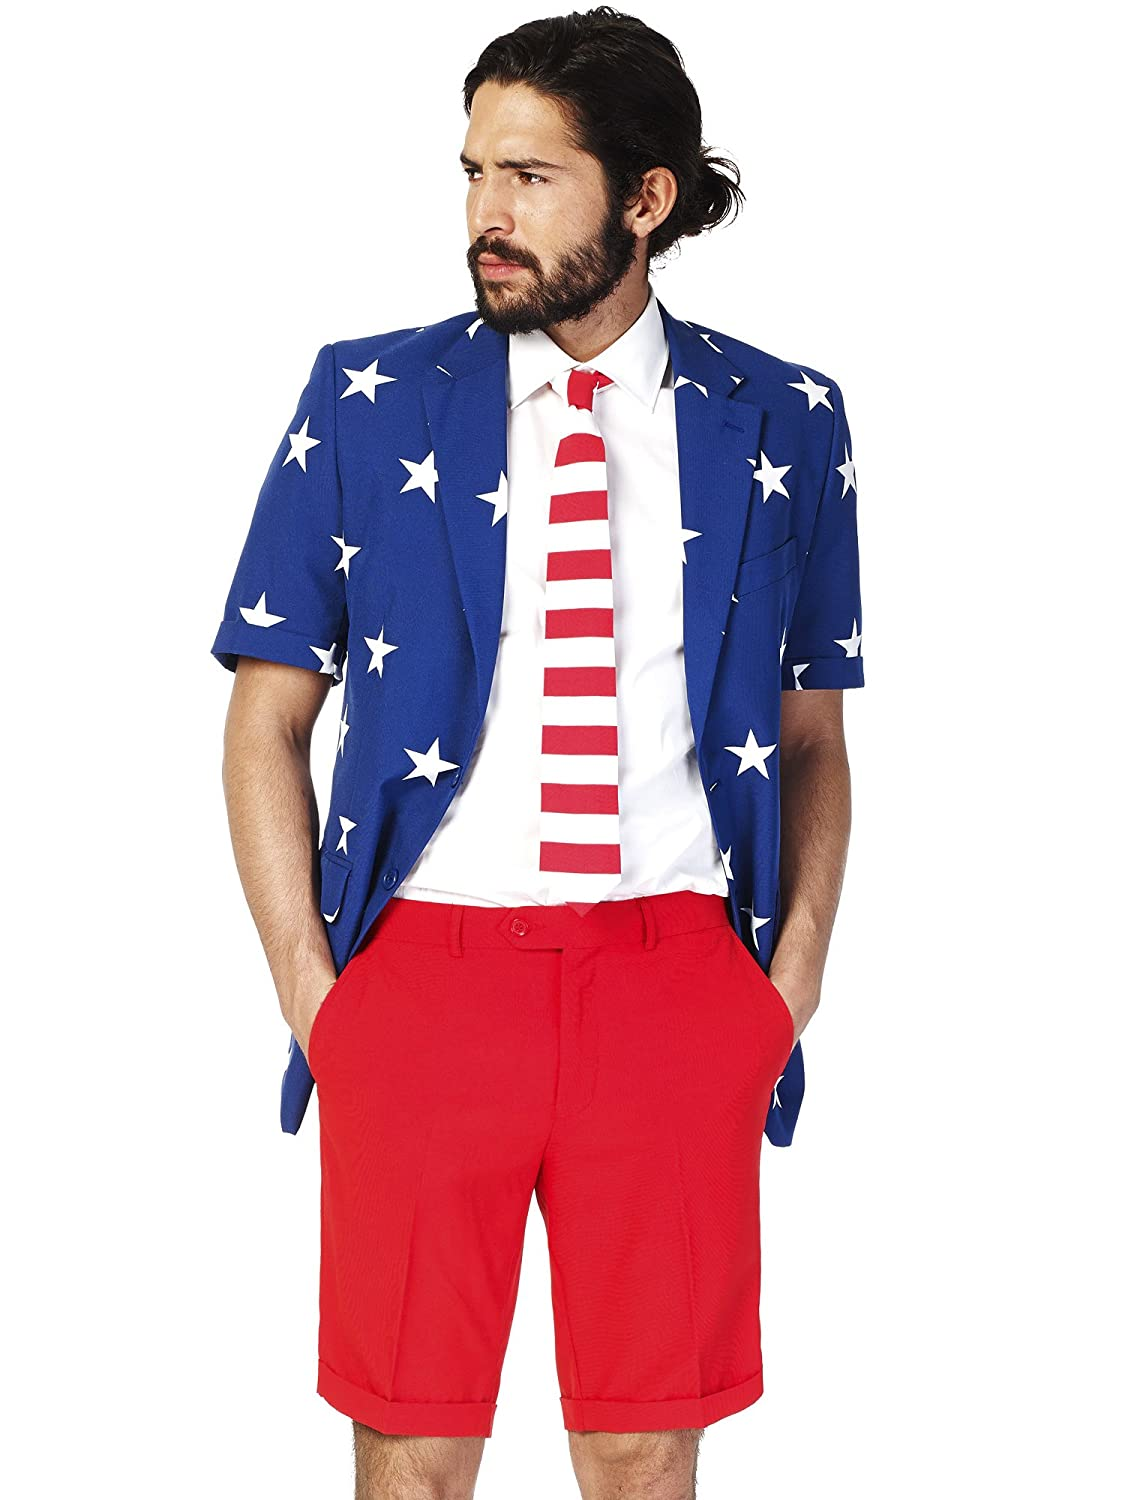 Opposuits American Flag Suit for Men – USA Outfit for The 4th of July with Pants, Jacket and Tie OppoSuits USA Inc. OSUM-FLAG